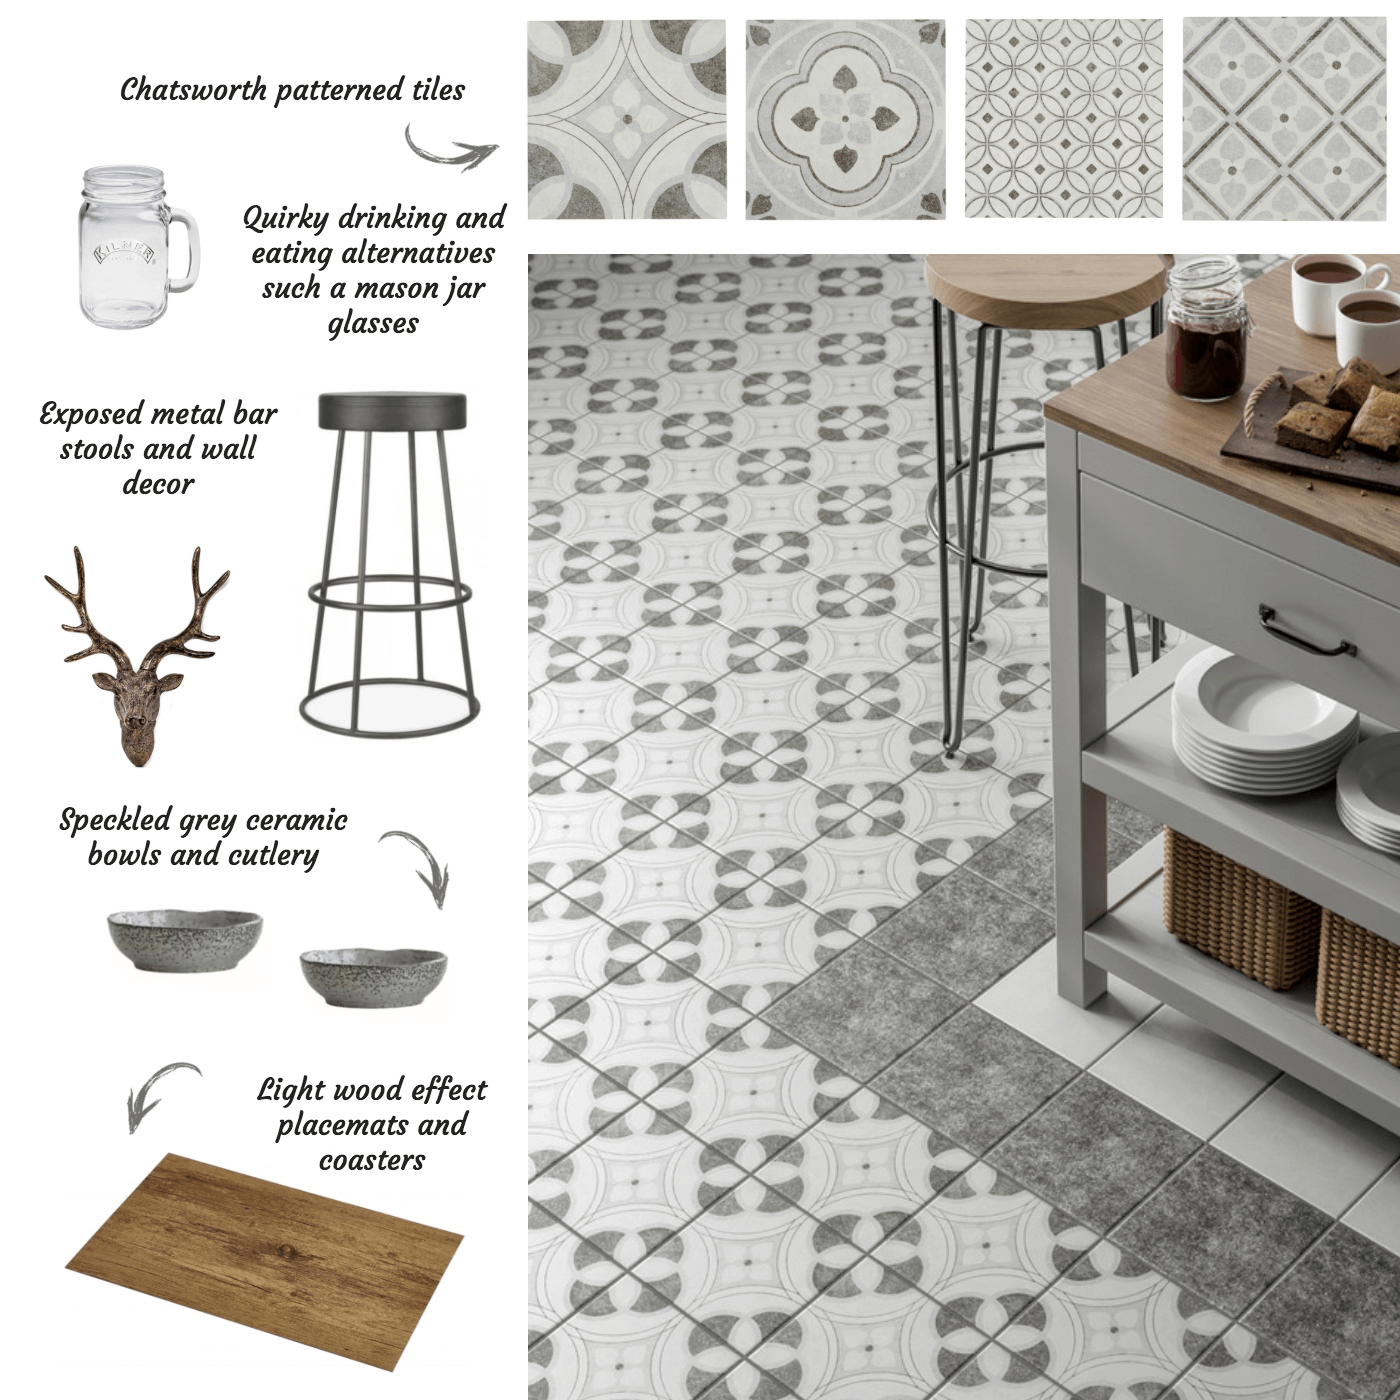 Chatsworth Patterned Tiles